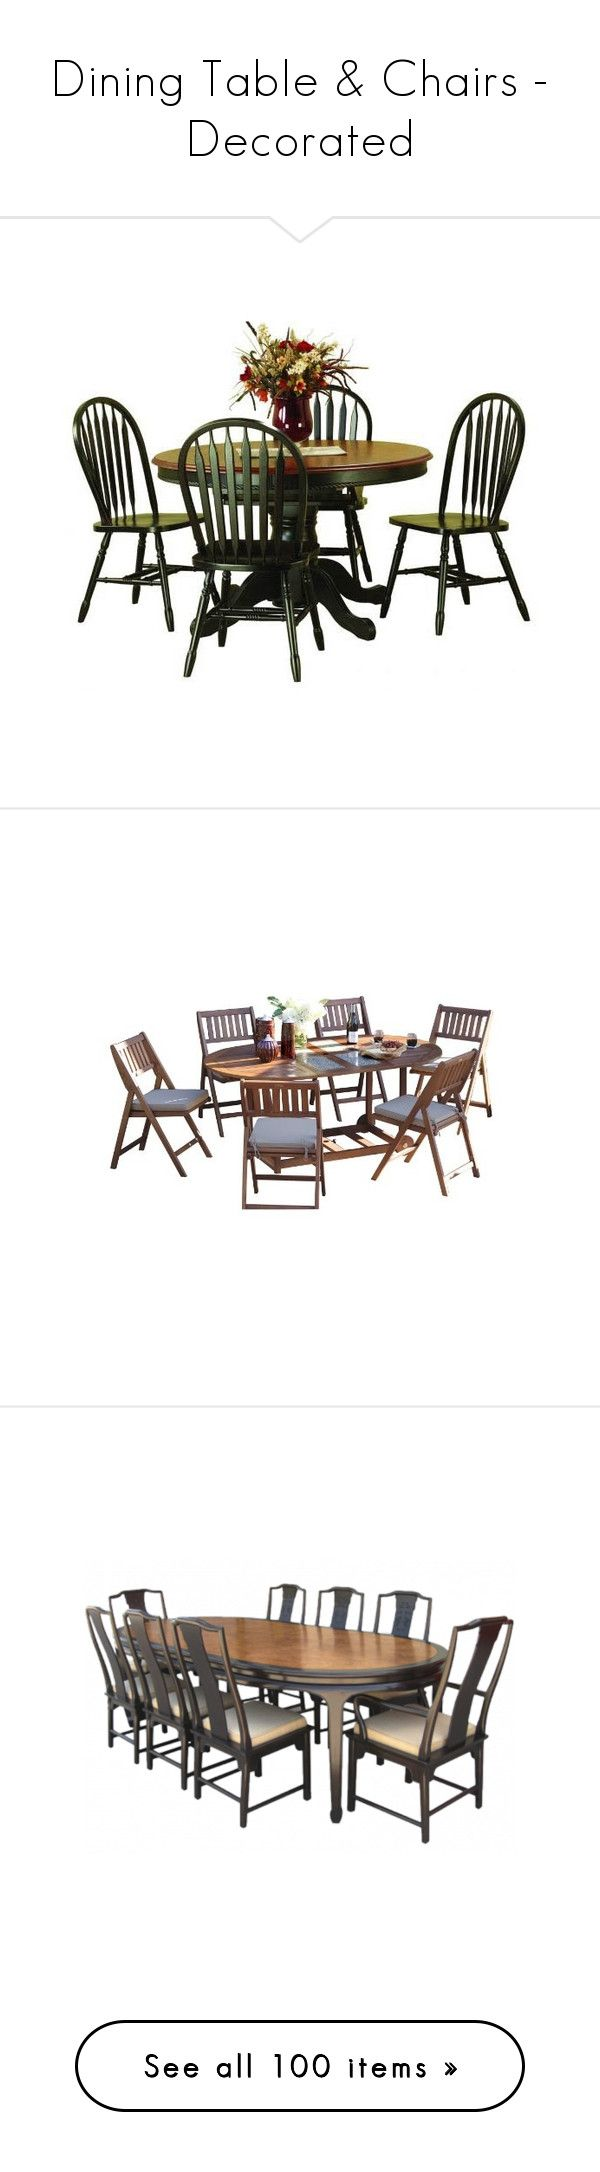 """""""Dining Table & Chairs - Decorated"""" by lynnspinterest ❤ liked on Polyvore featuring home, furniture, tables, dining sets, dining tables, dining, wooden dining table set, wood dining set, butterfly dining set and wooden dining set"""